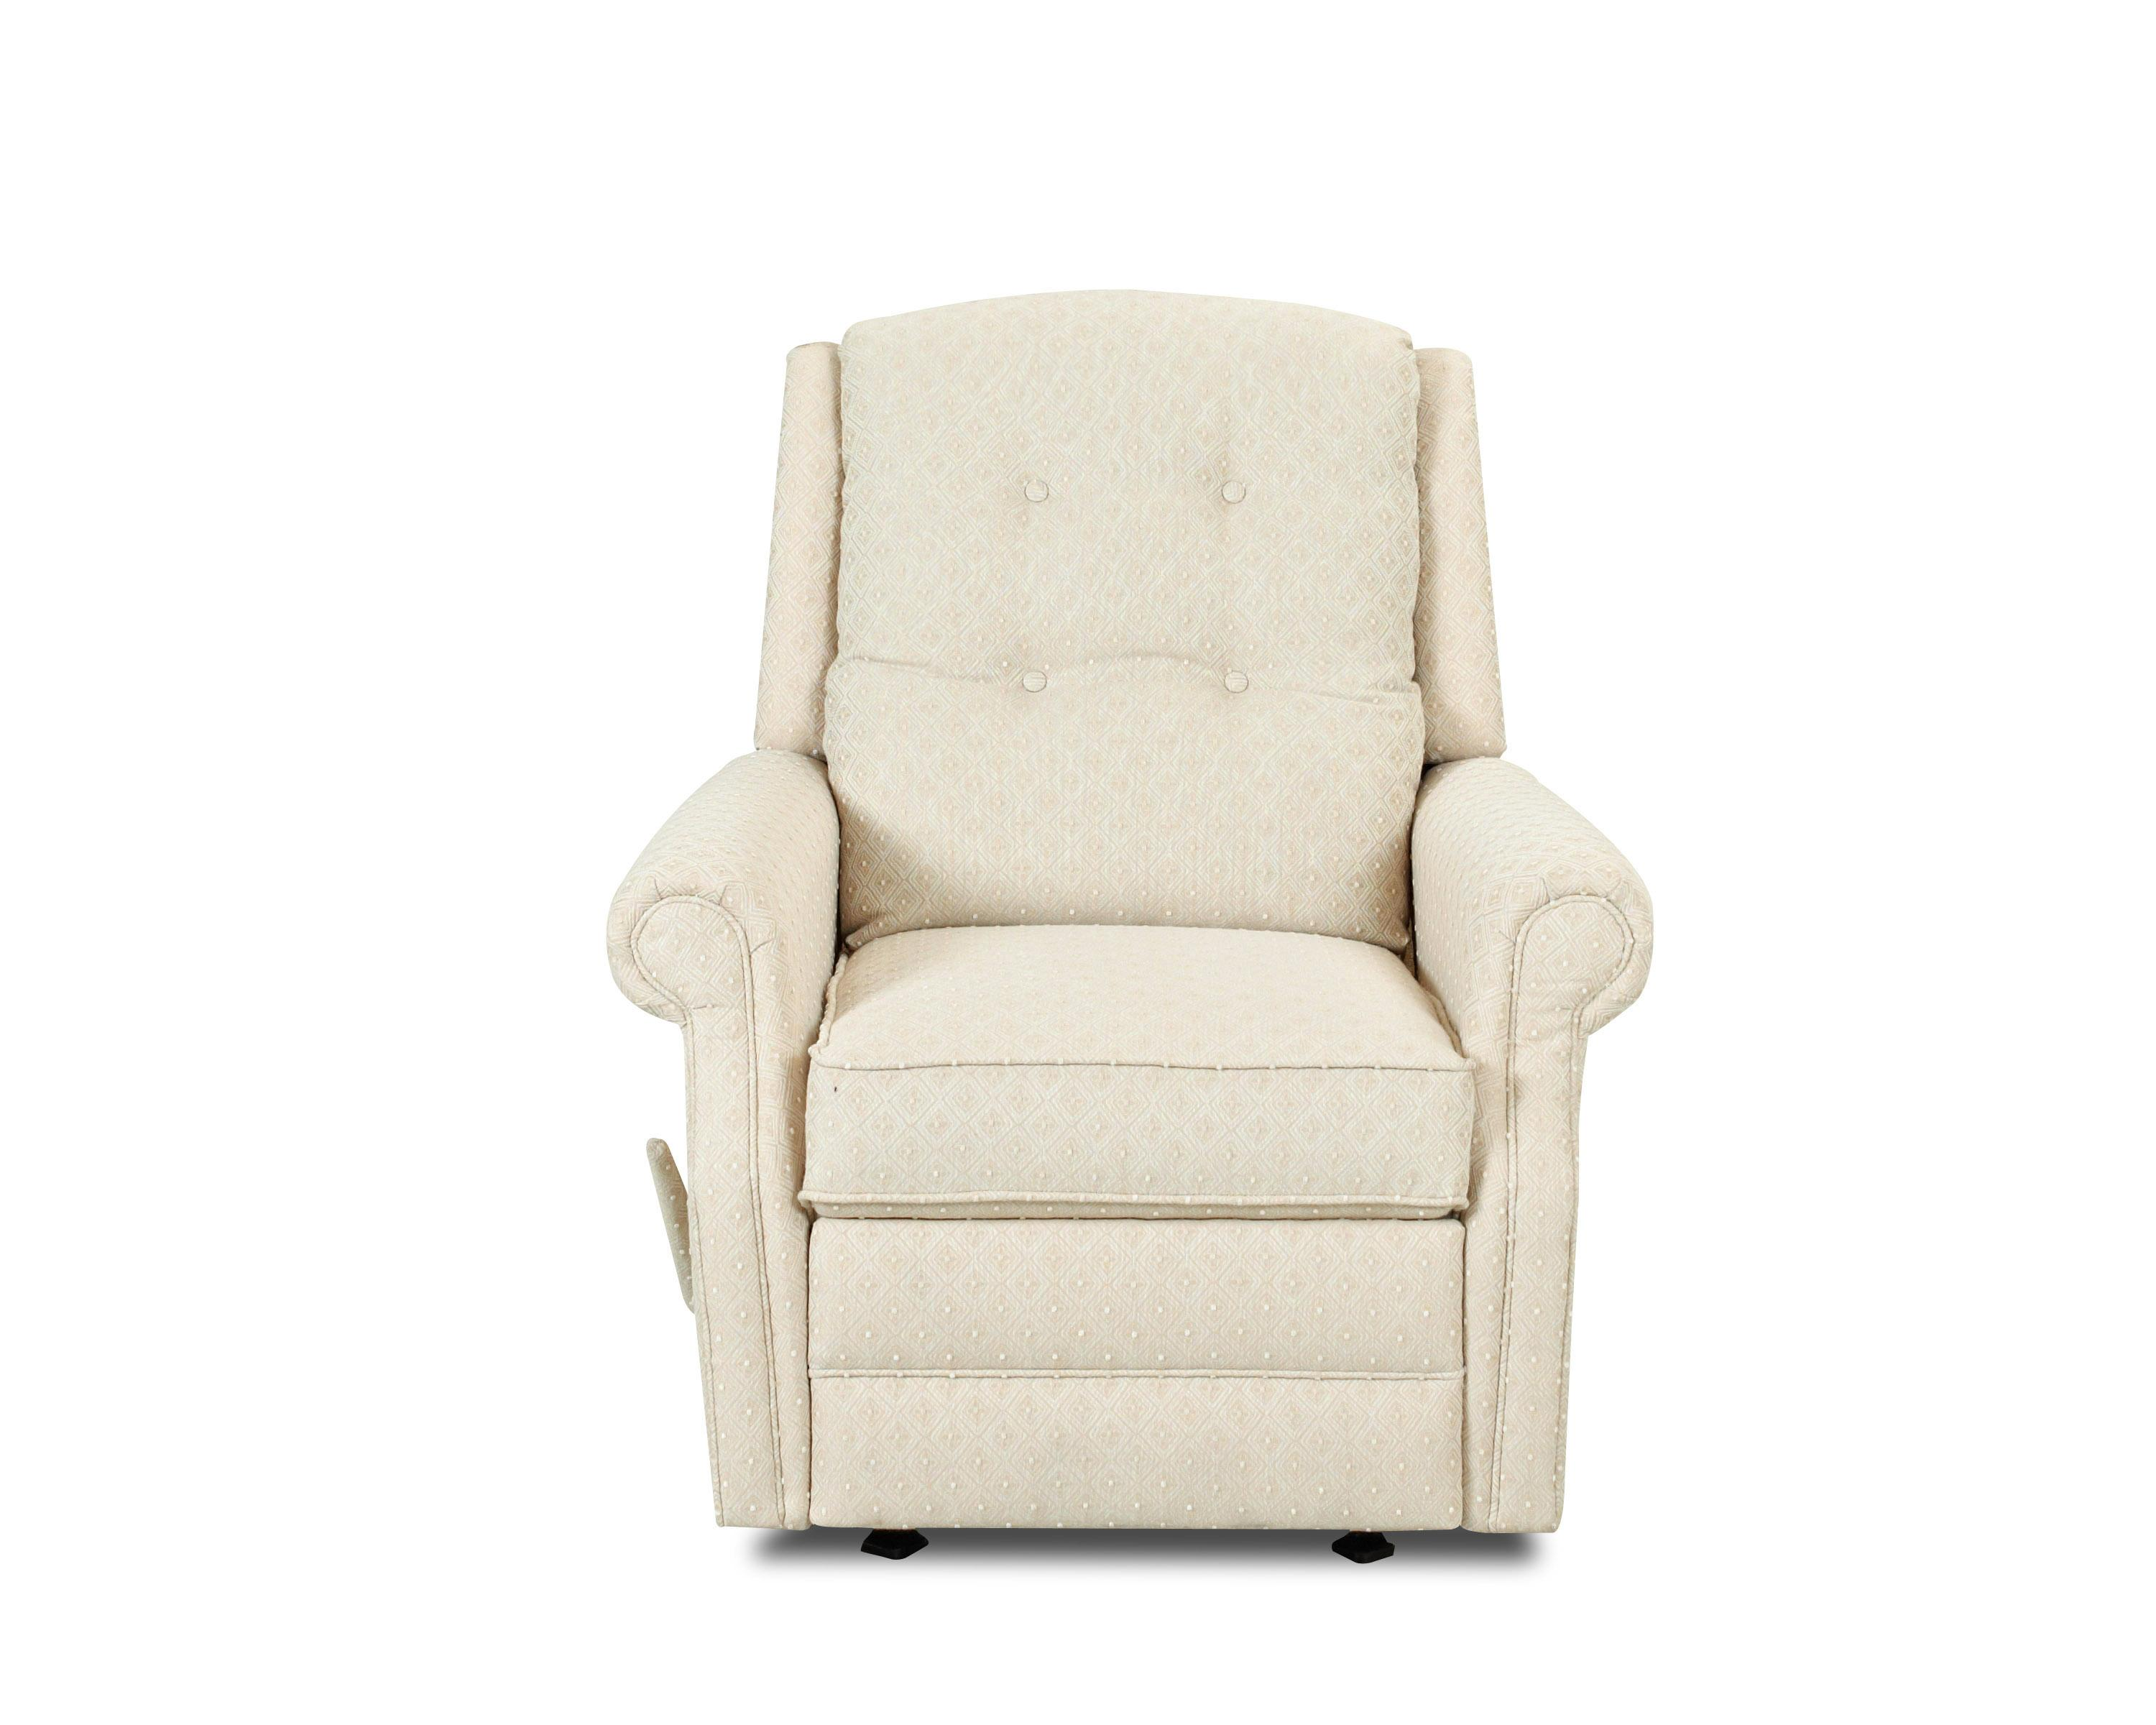 Sand Key Manual Rocking Reclining Chair  by Klaussner at Northeast Factory Direct